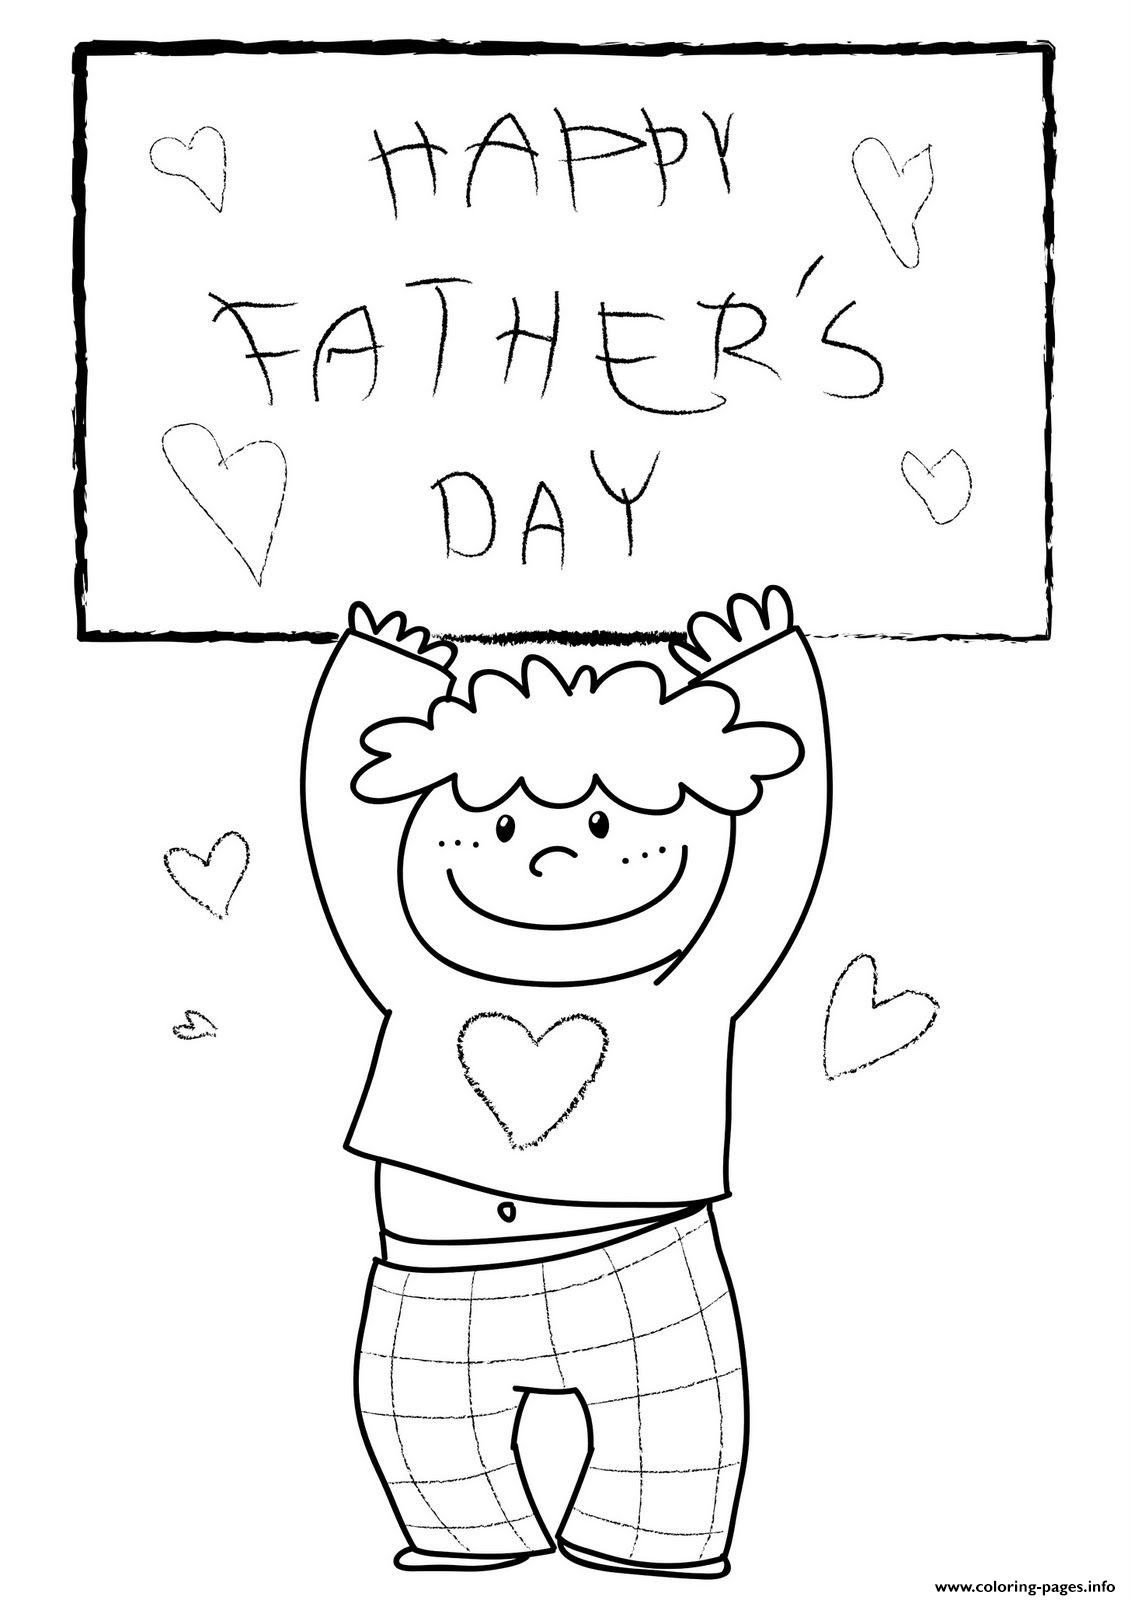 Growth Fathers Day Love Happy coloring pages